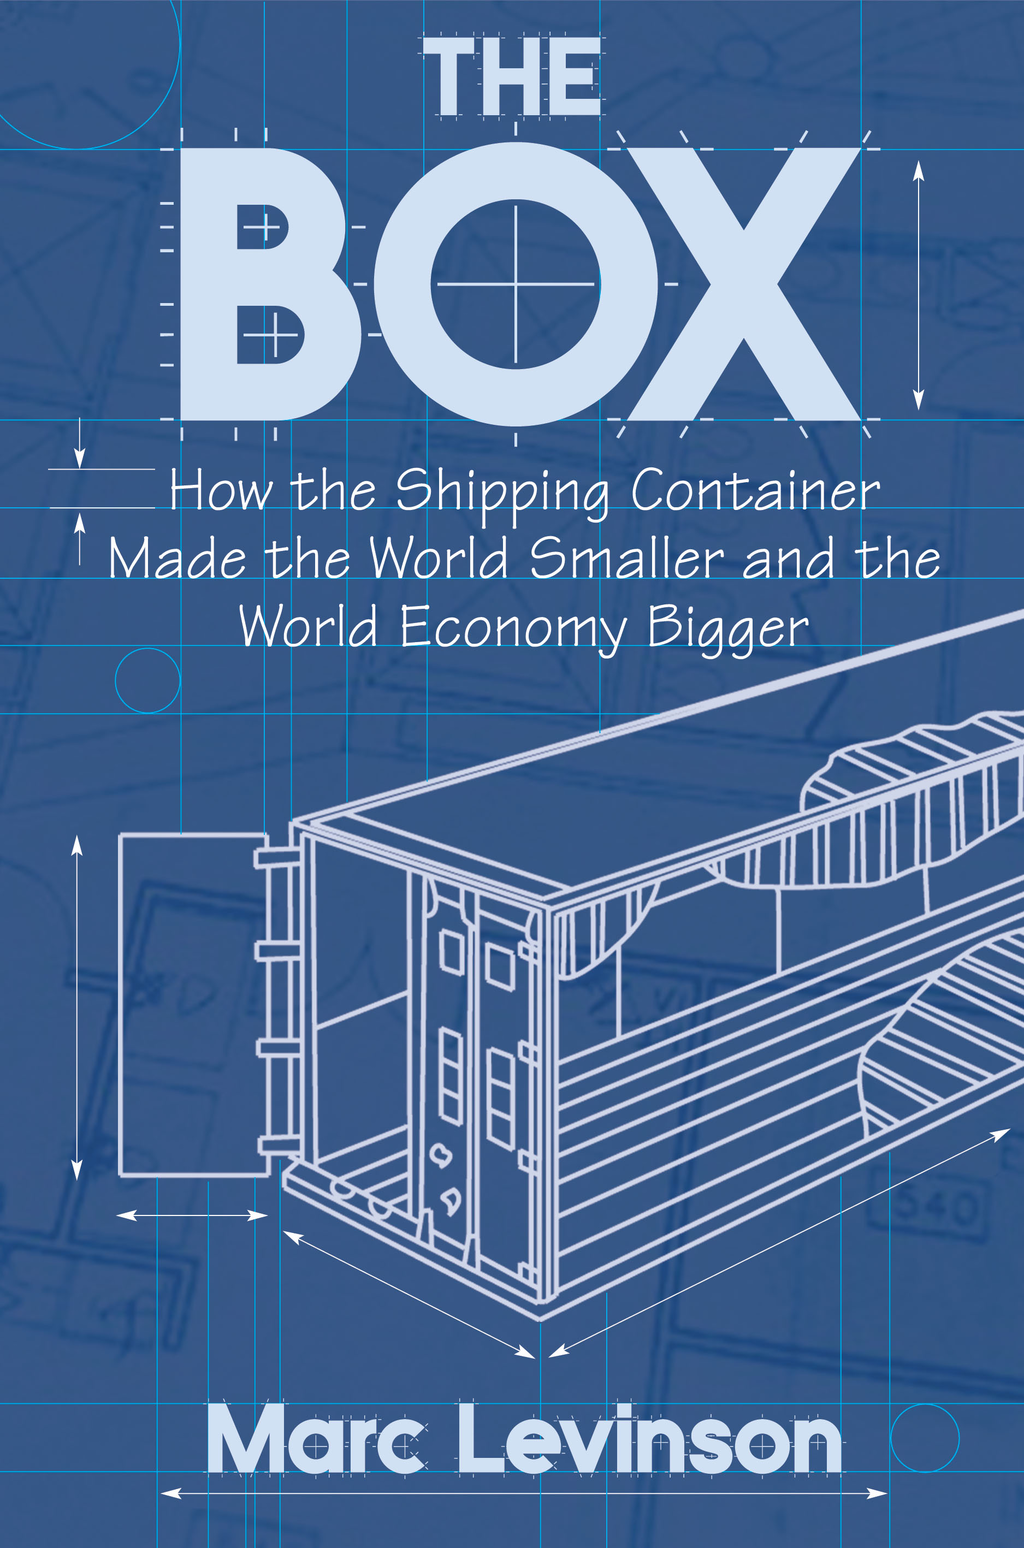 The Box How the Shipping Container Made the World Smaller and the World Economy Bigger (New in Paper)